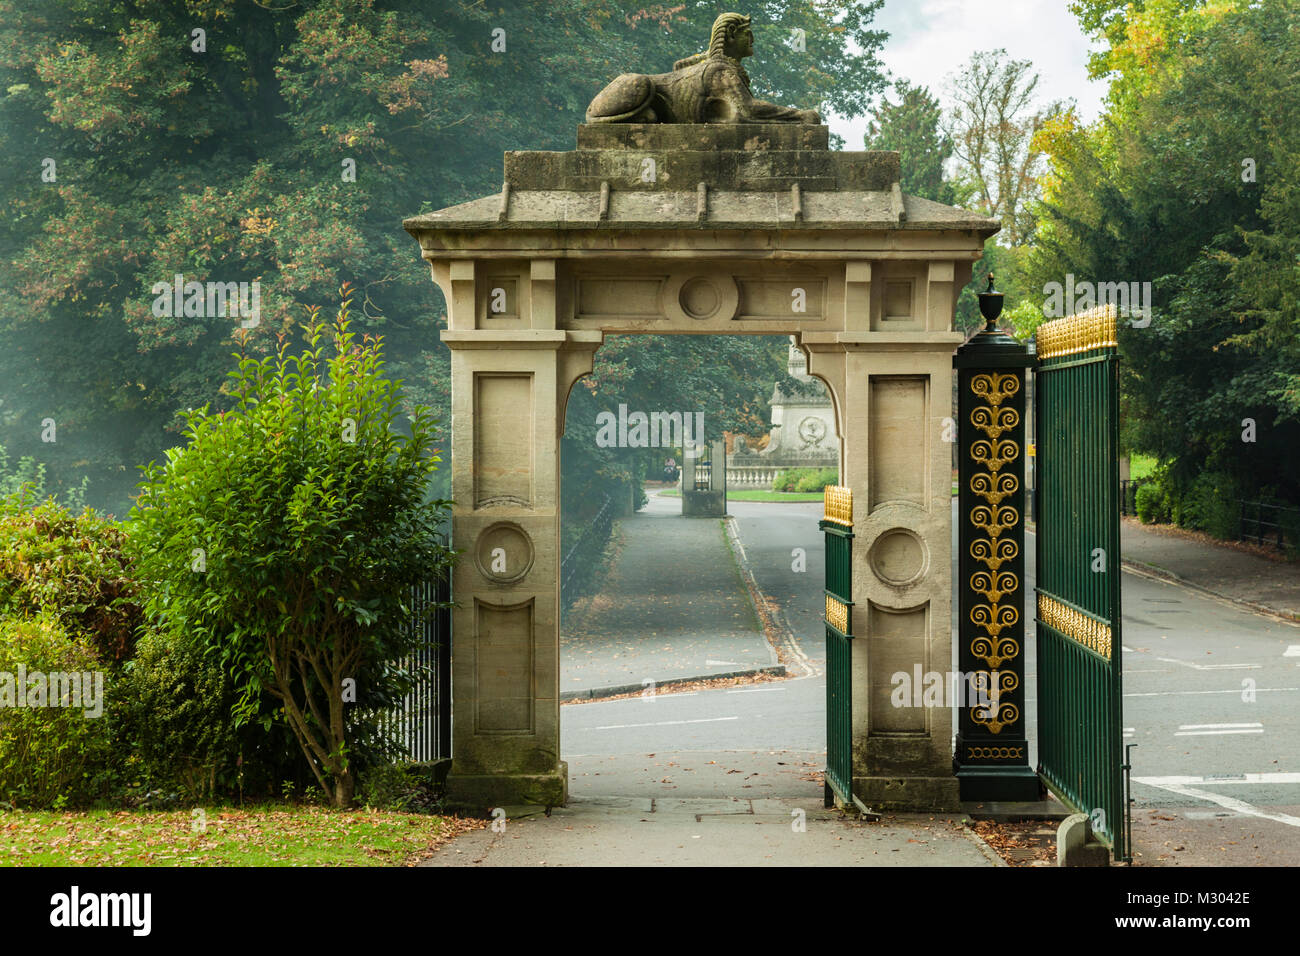 Gate in Victoria Park, Bath, Somerset, England. - Stock Image